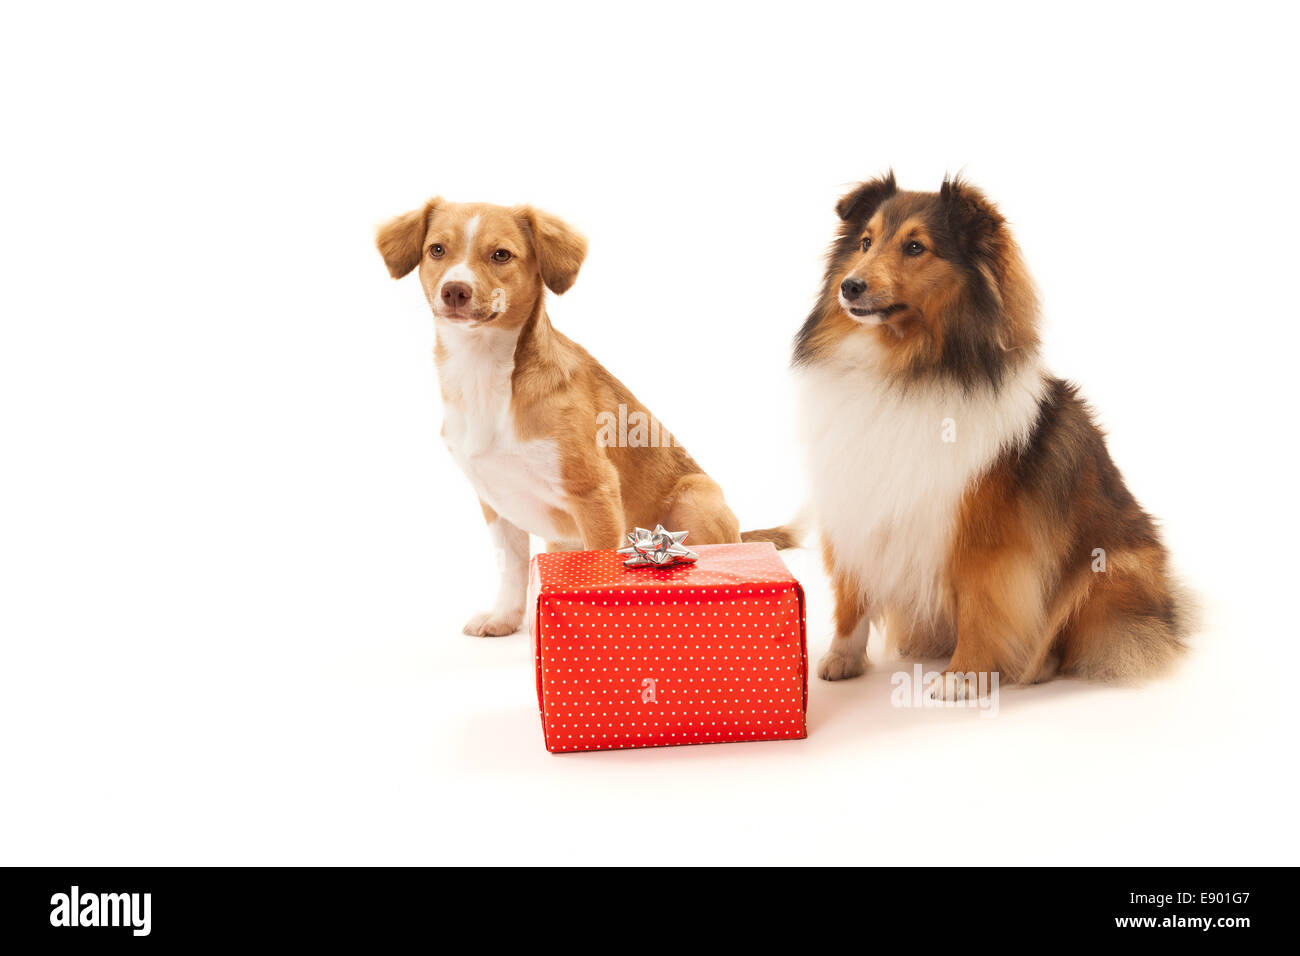 Two dogs over white background looking at red gift box - Stock Image